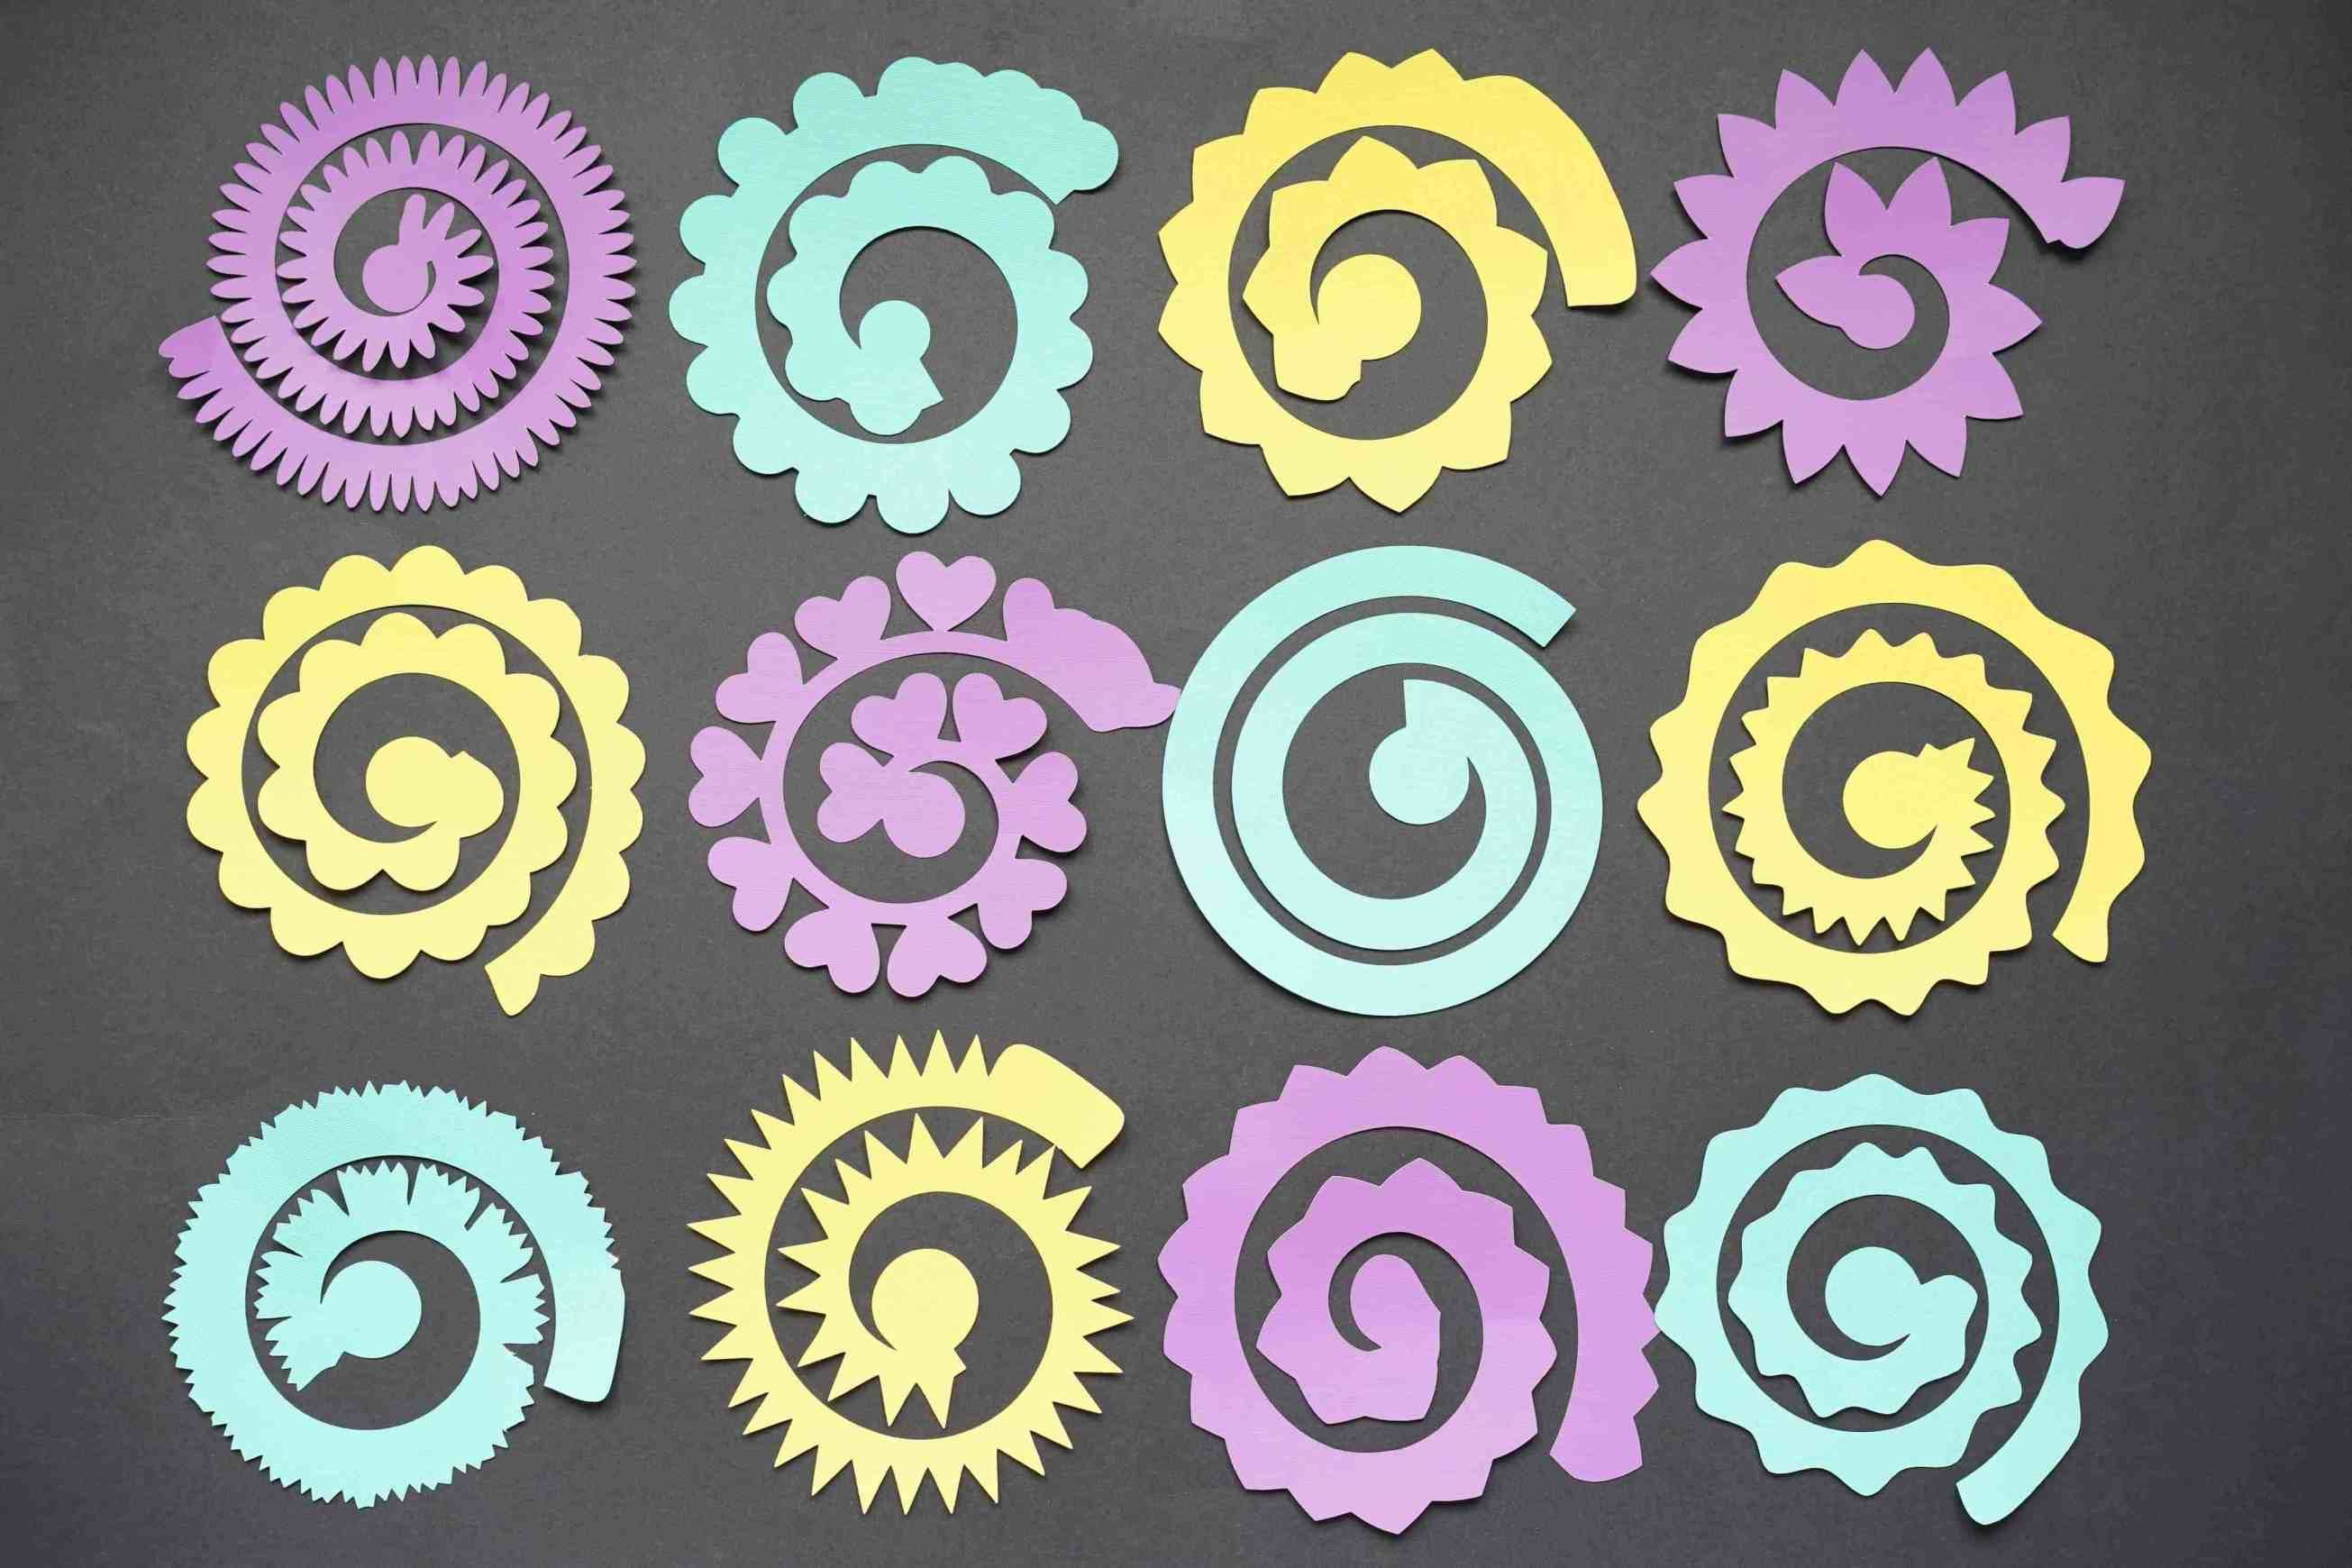 12 Free Rolled Flower SVG Templates Rolled paper flowers